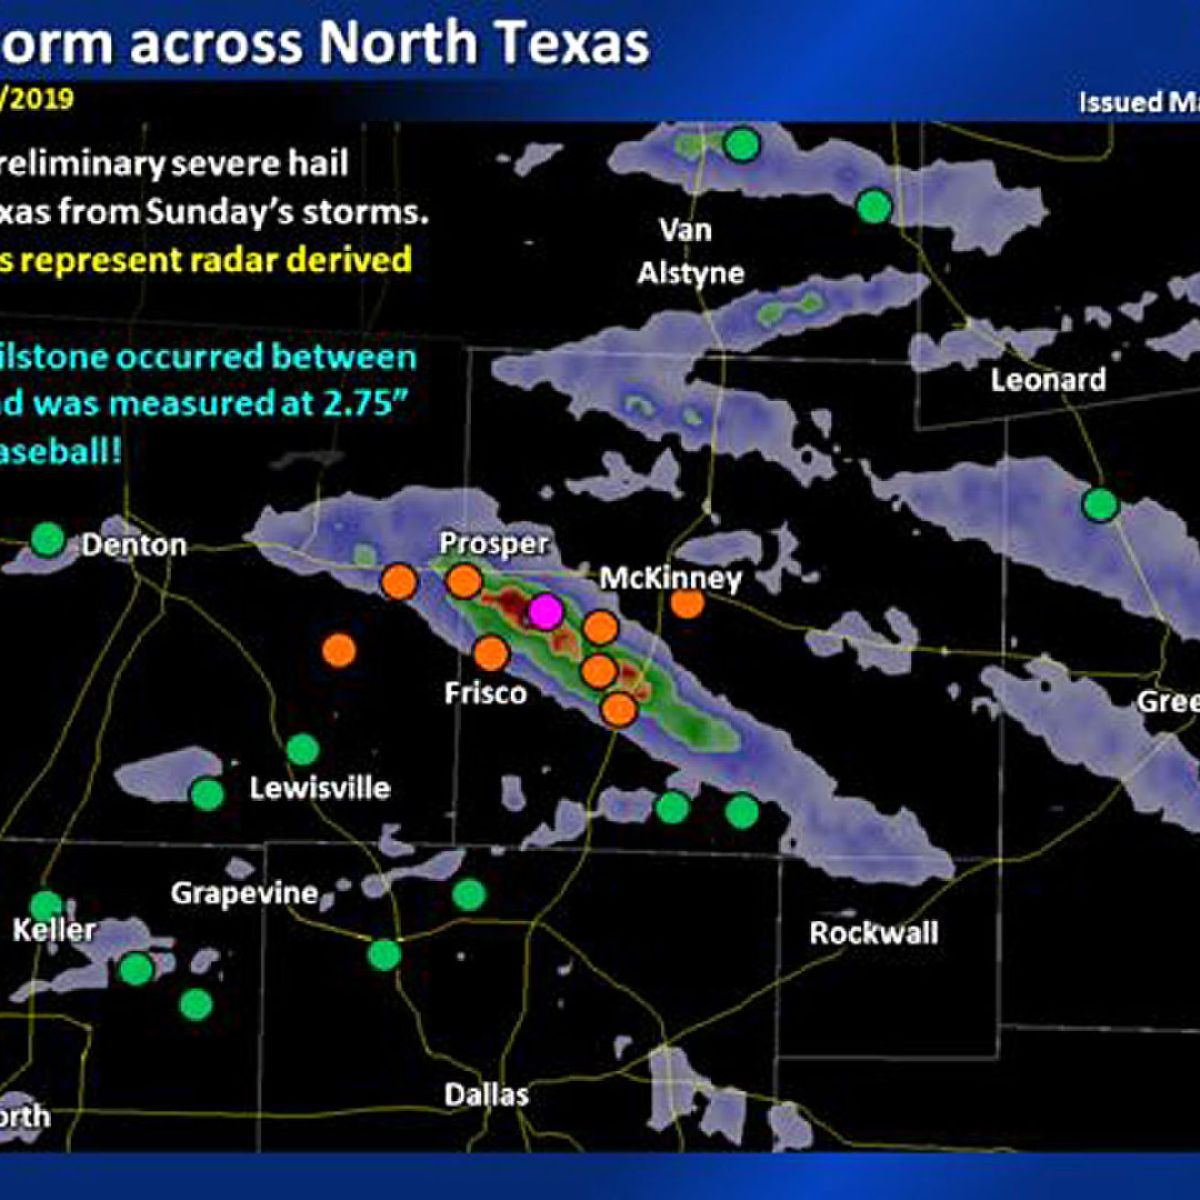 medium resolution of hunt county spared significant hail damage